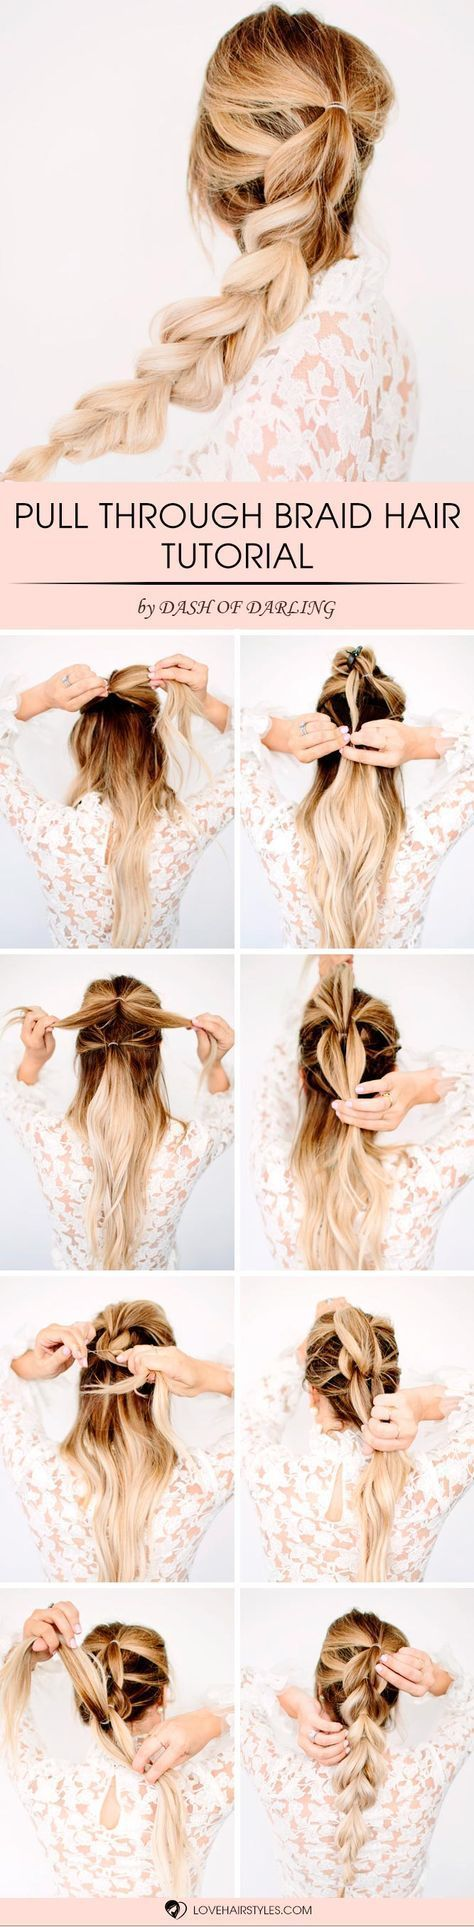 Hair Tutorials : With this pull through braid hair tutorial and pictorial you will add something ...